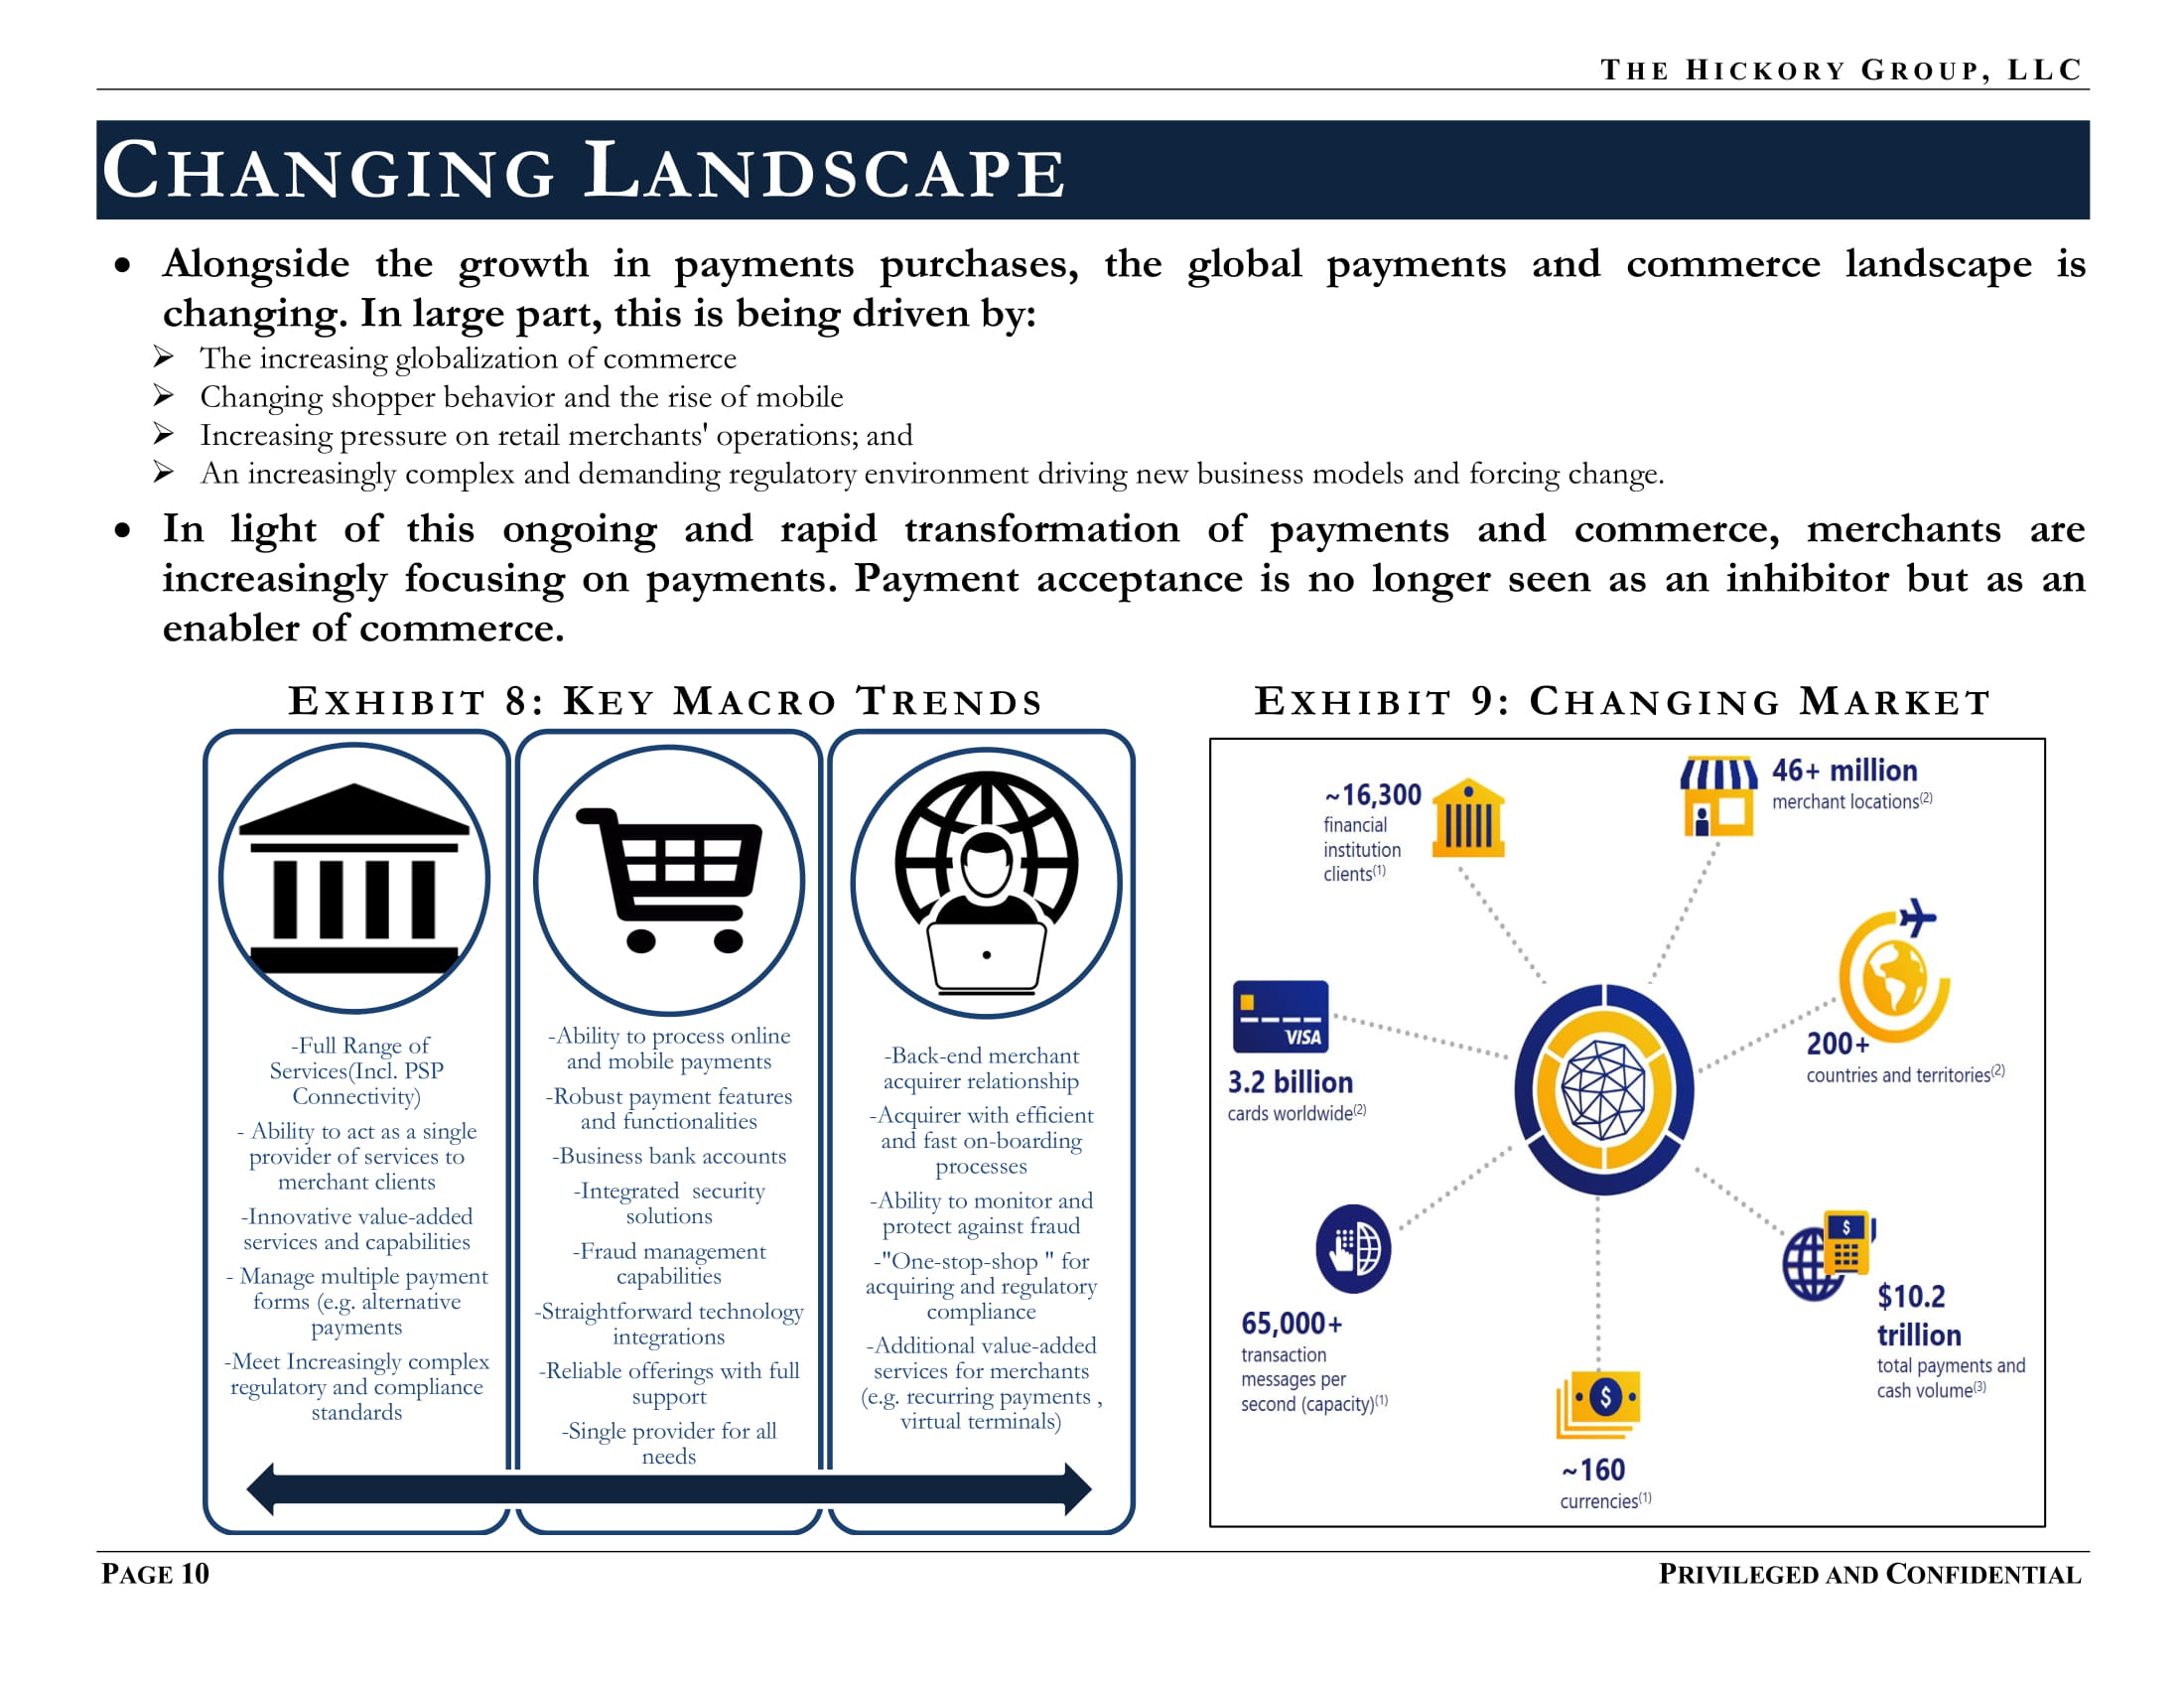 FINAL_THG FinTech Industry - Payment Processing Sector Flash Report (27 March 2019) Privileged & Confidential-16.jpg